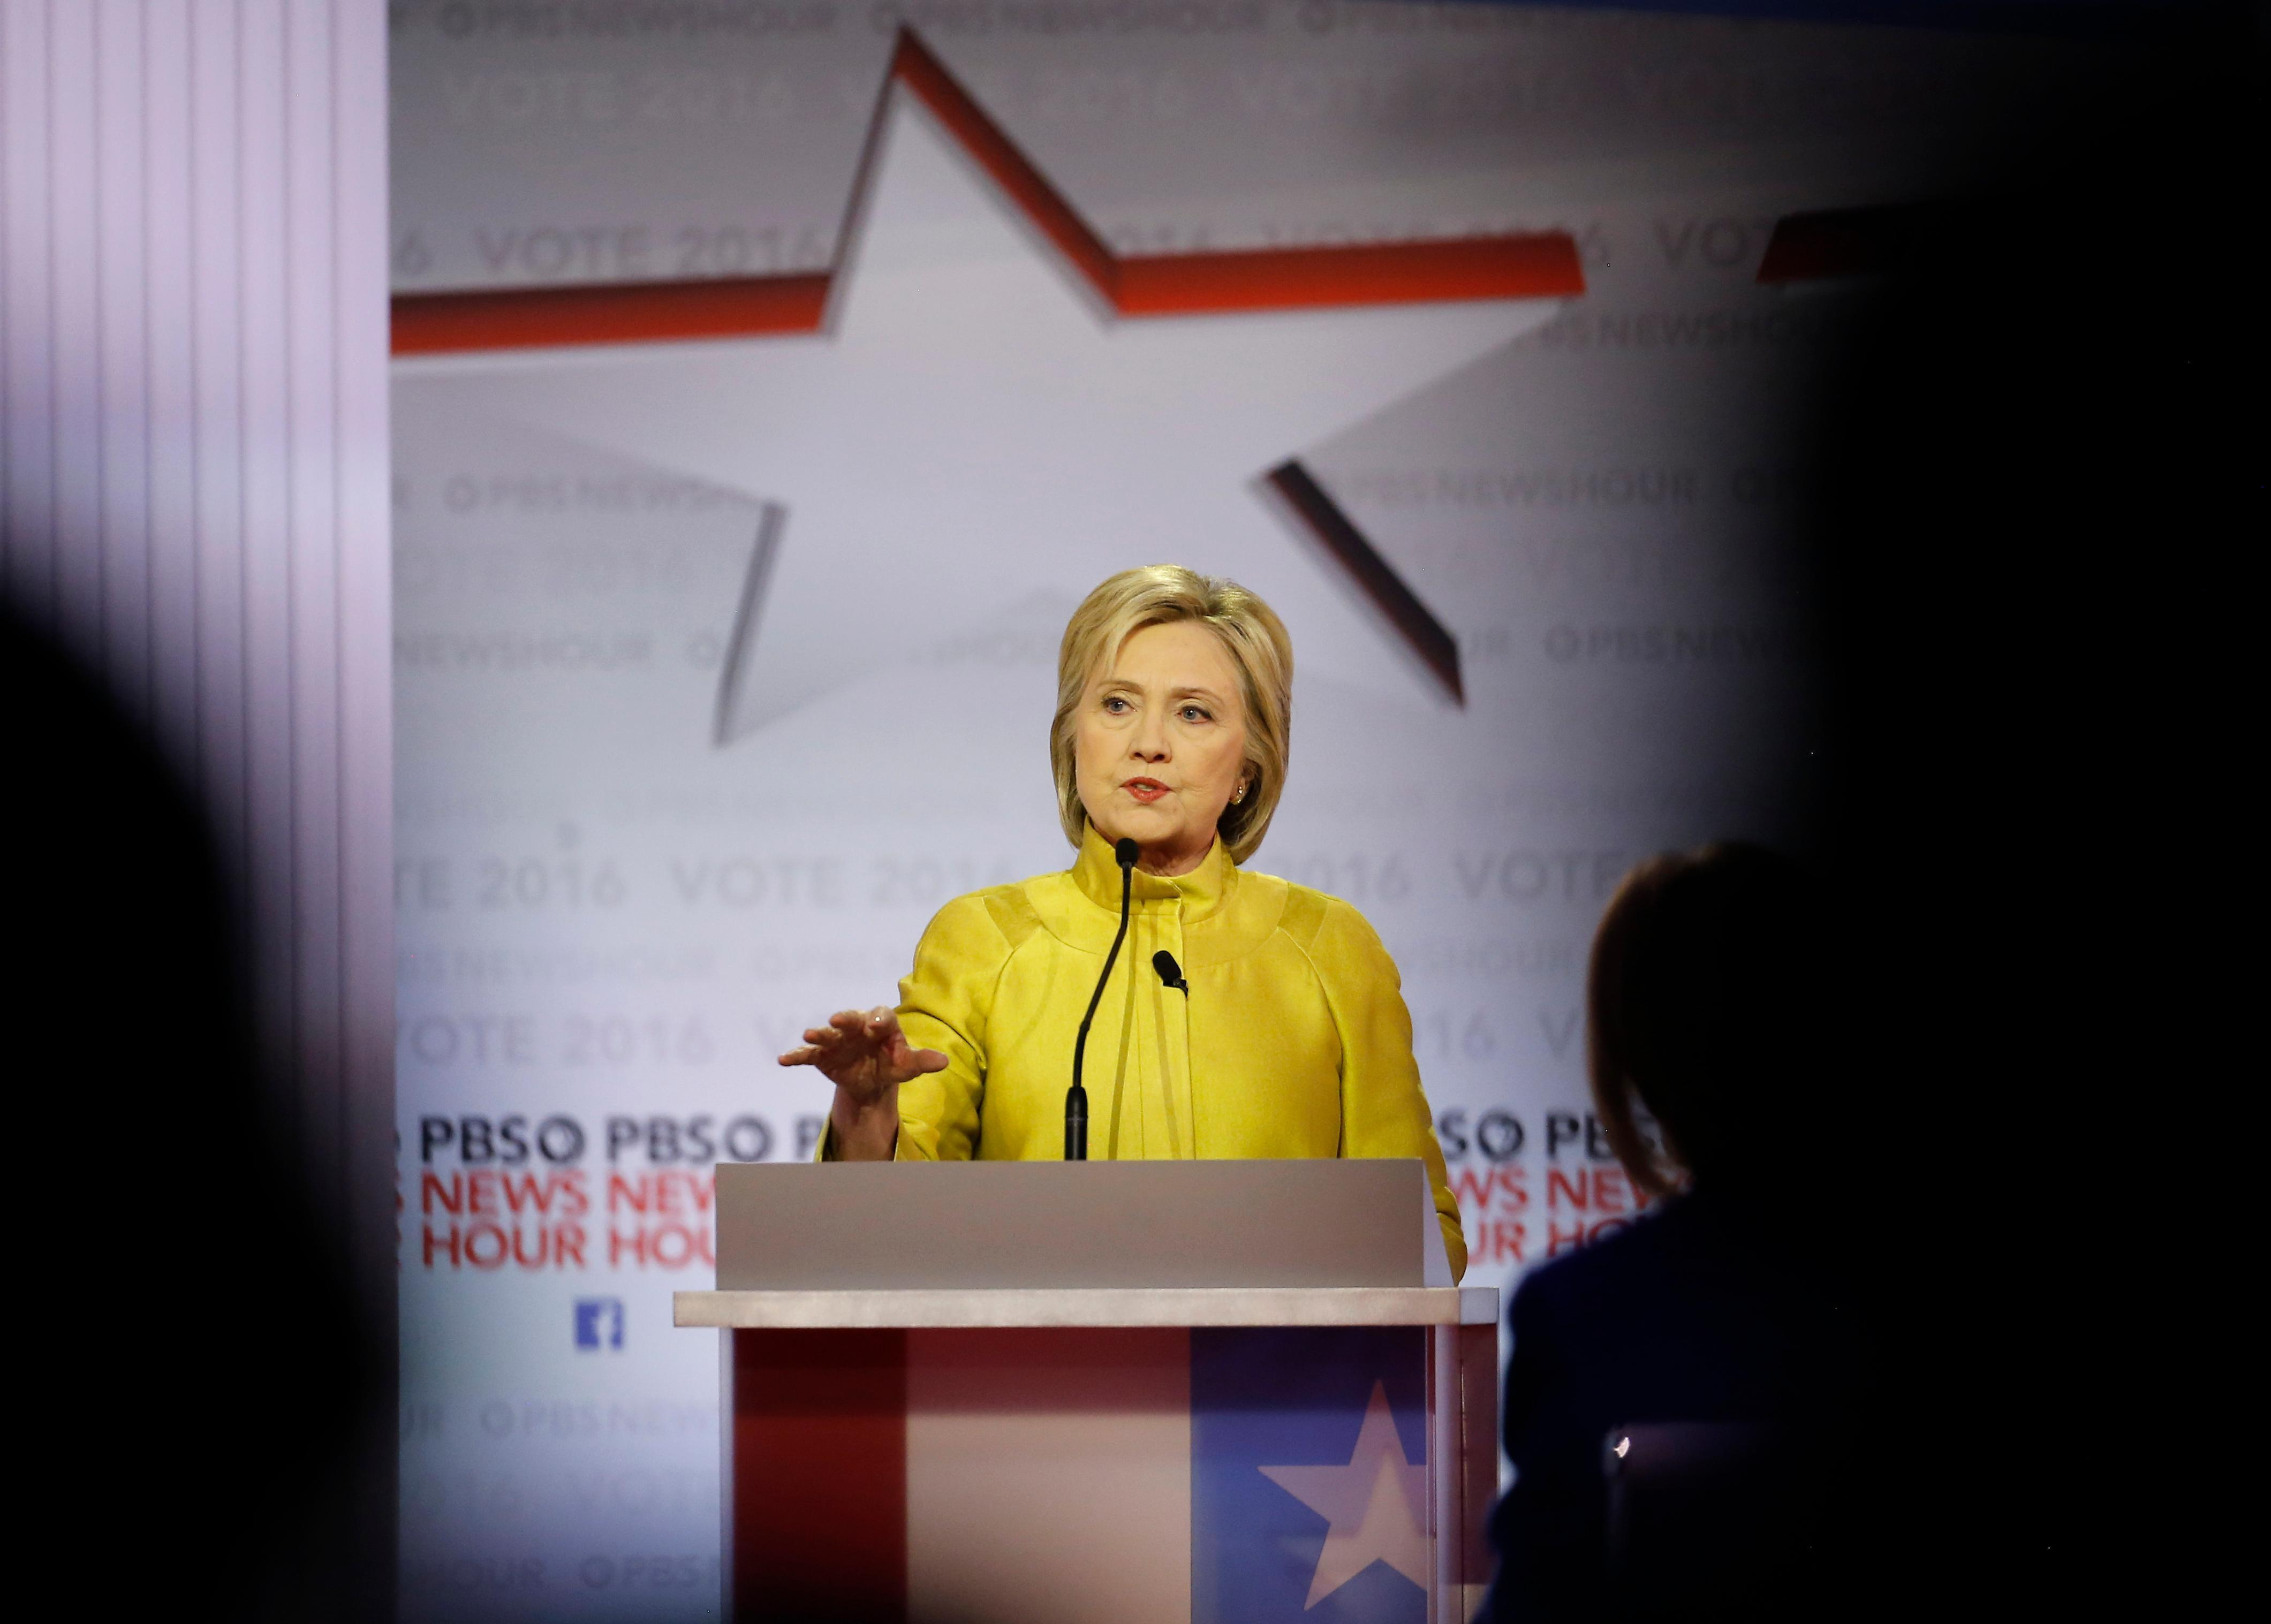 Clinton on migrant kids: 'Those children needed to be processed appropriately'